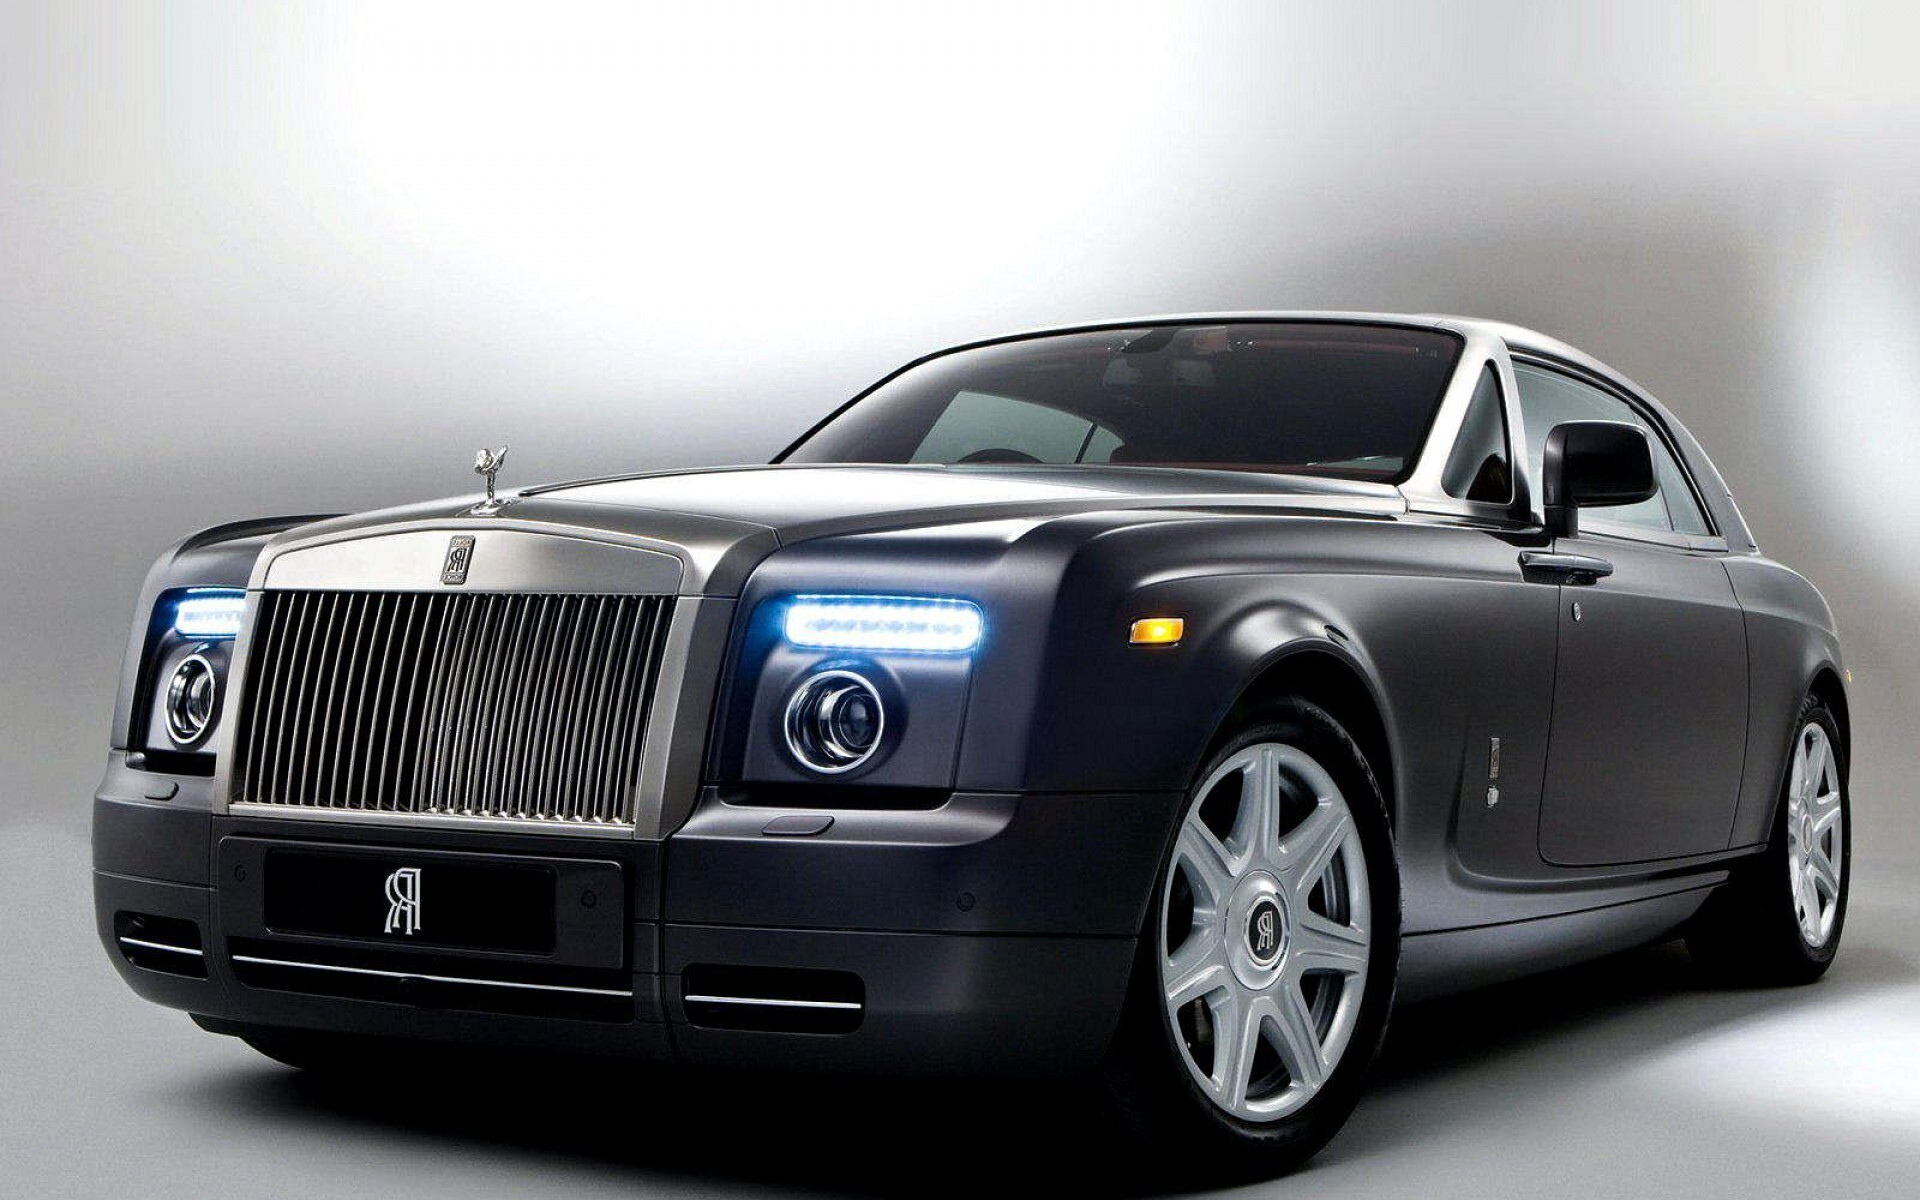 Black Car Rolls Royce Phantom Hd Wallpapers